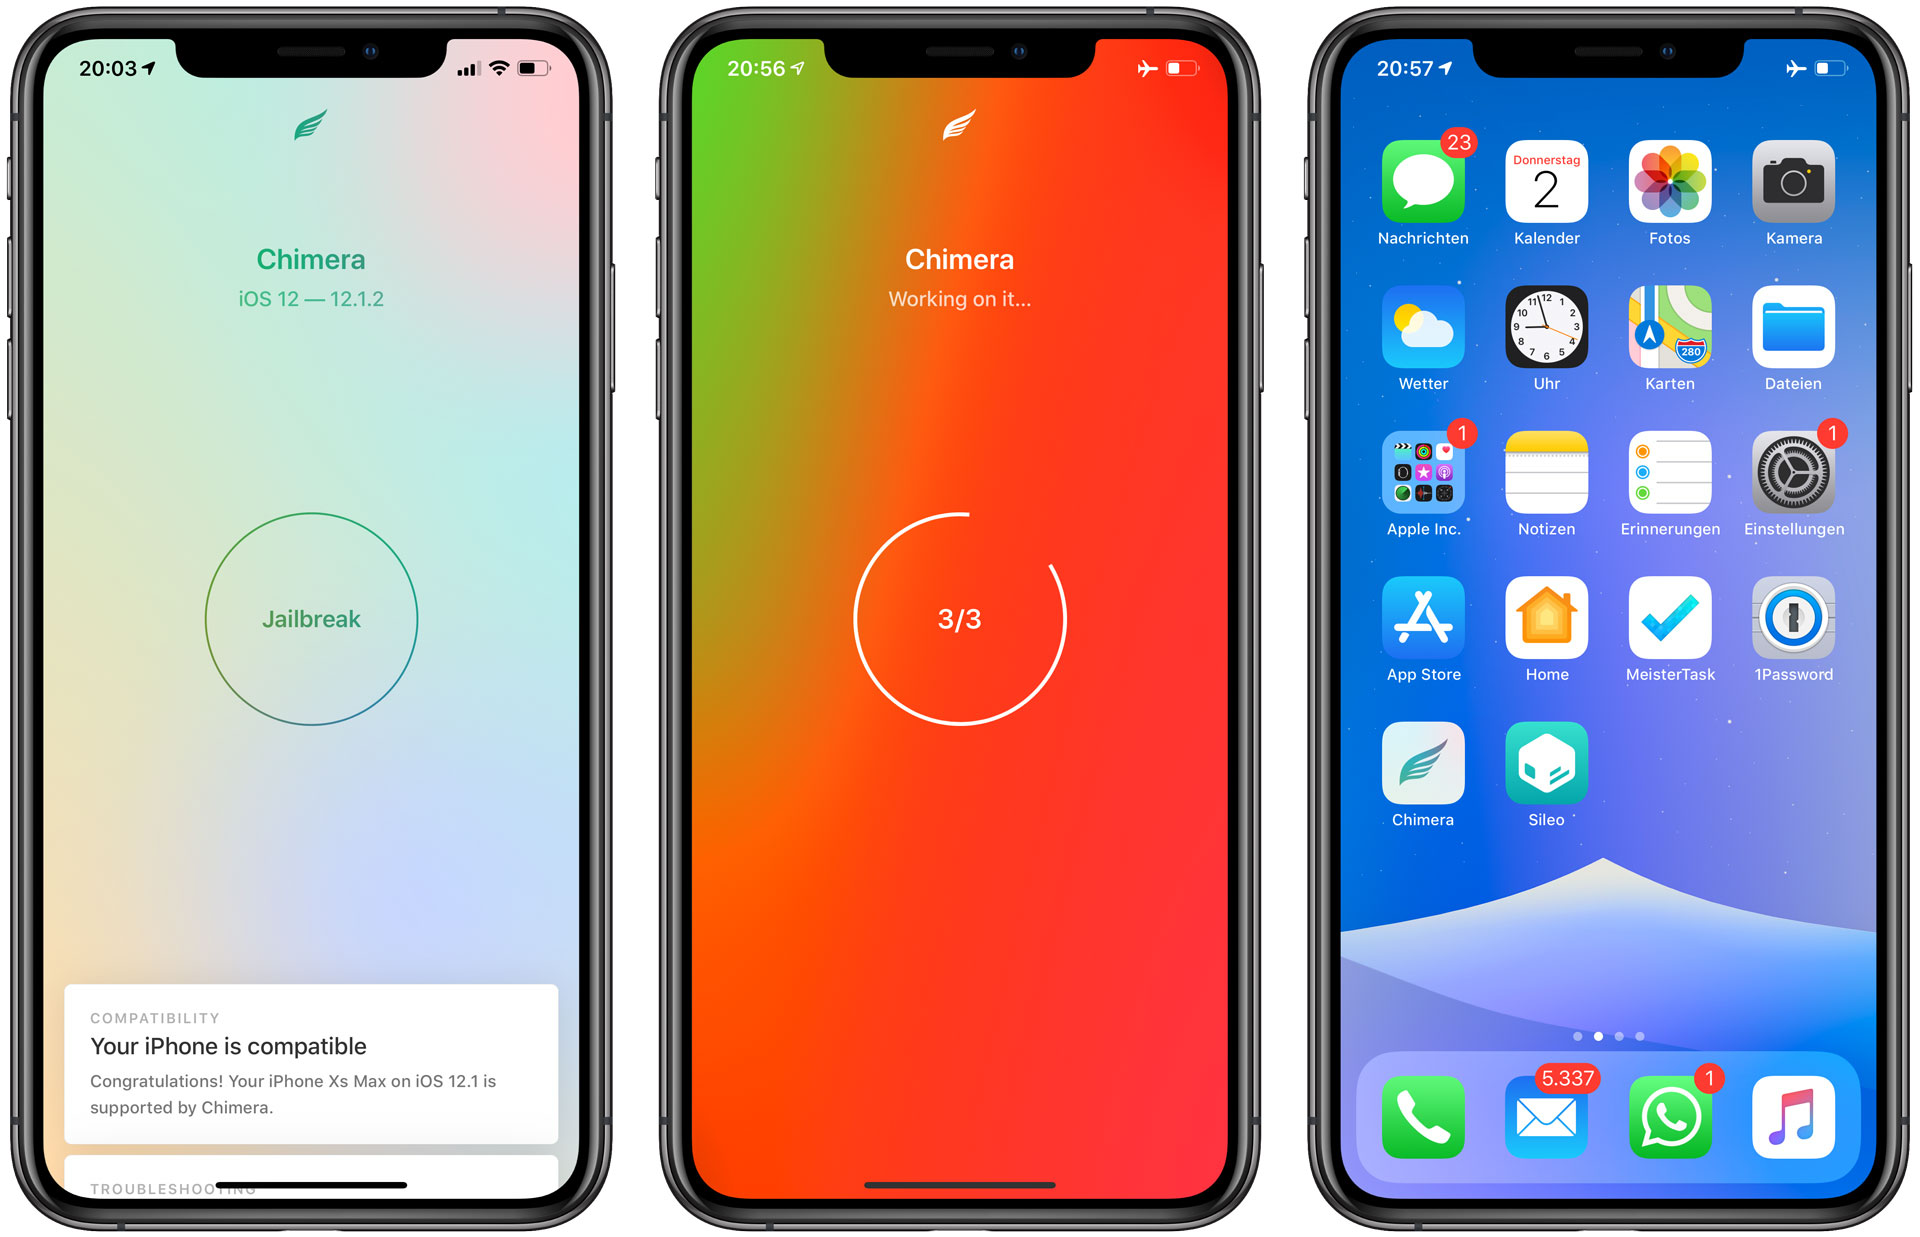 Chimera iOS 12 Jailbreak - So funktioniert's - Hack4Life